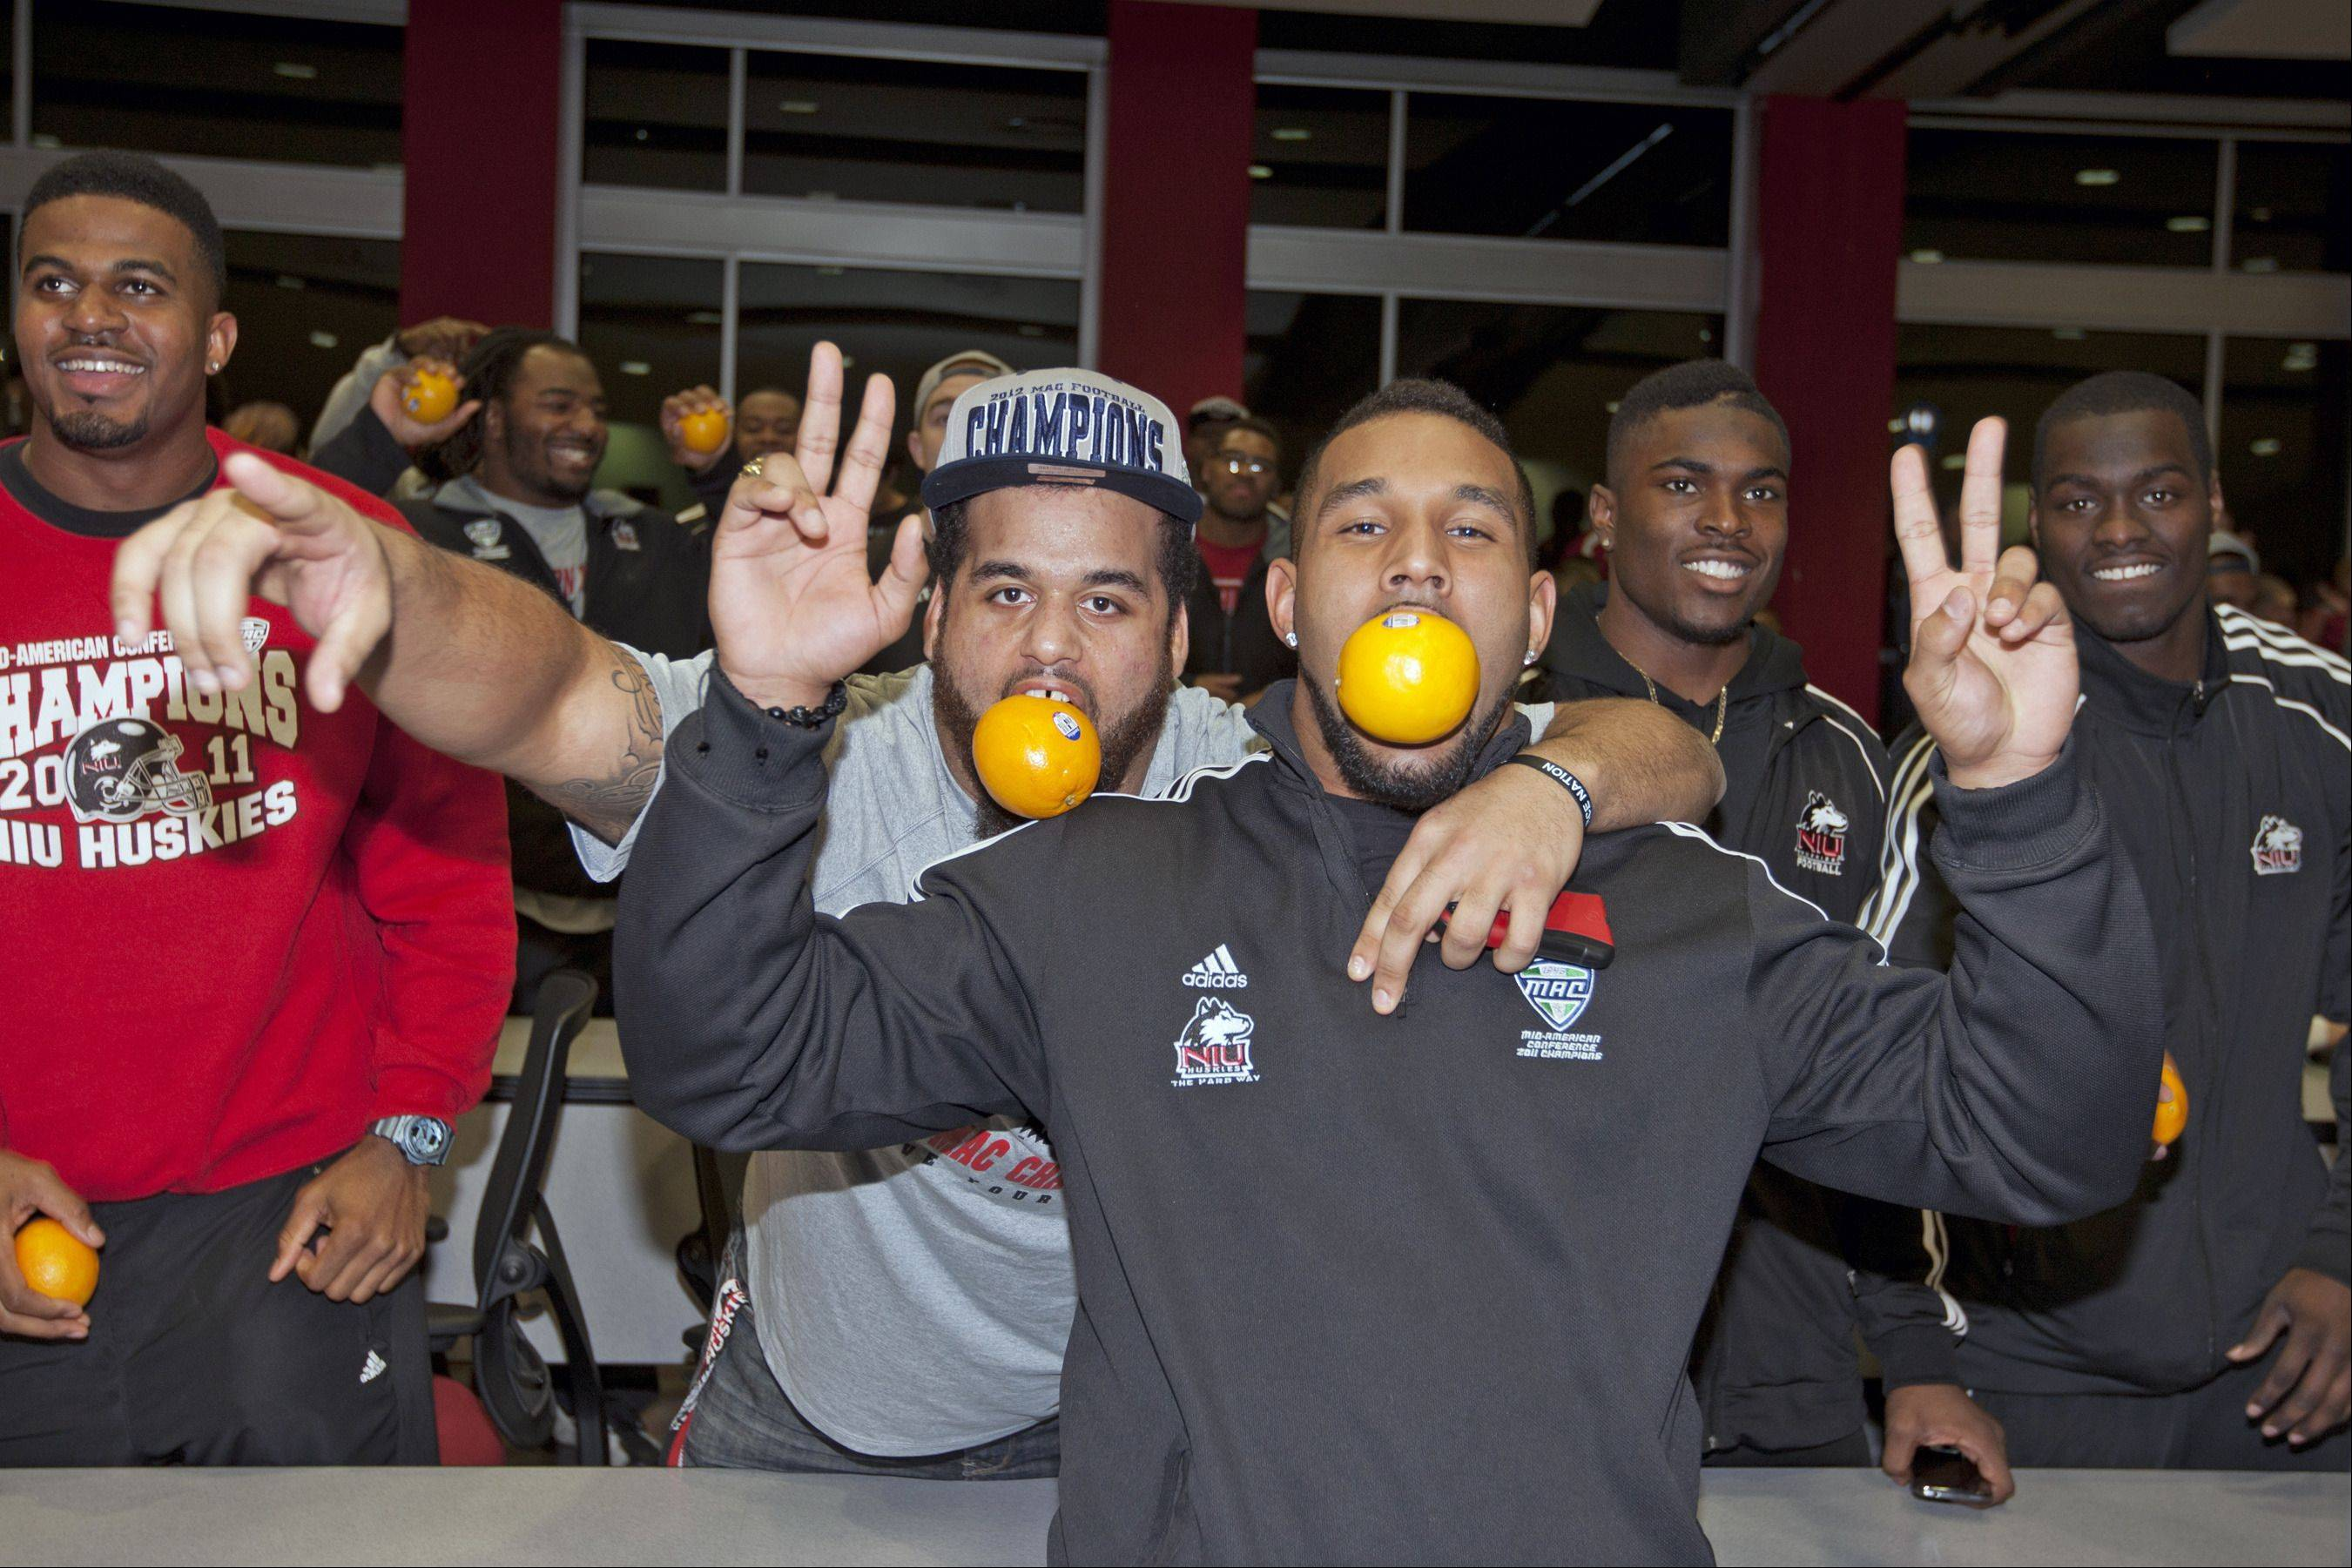 Northern Illinois football players Zach Anderson and Sean Progar celebrate after hearing that NIU will play Florida State in the Orange Bowl on New Year's Day.